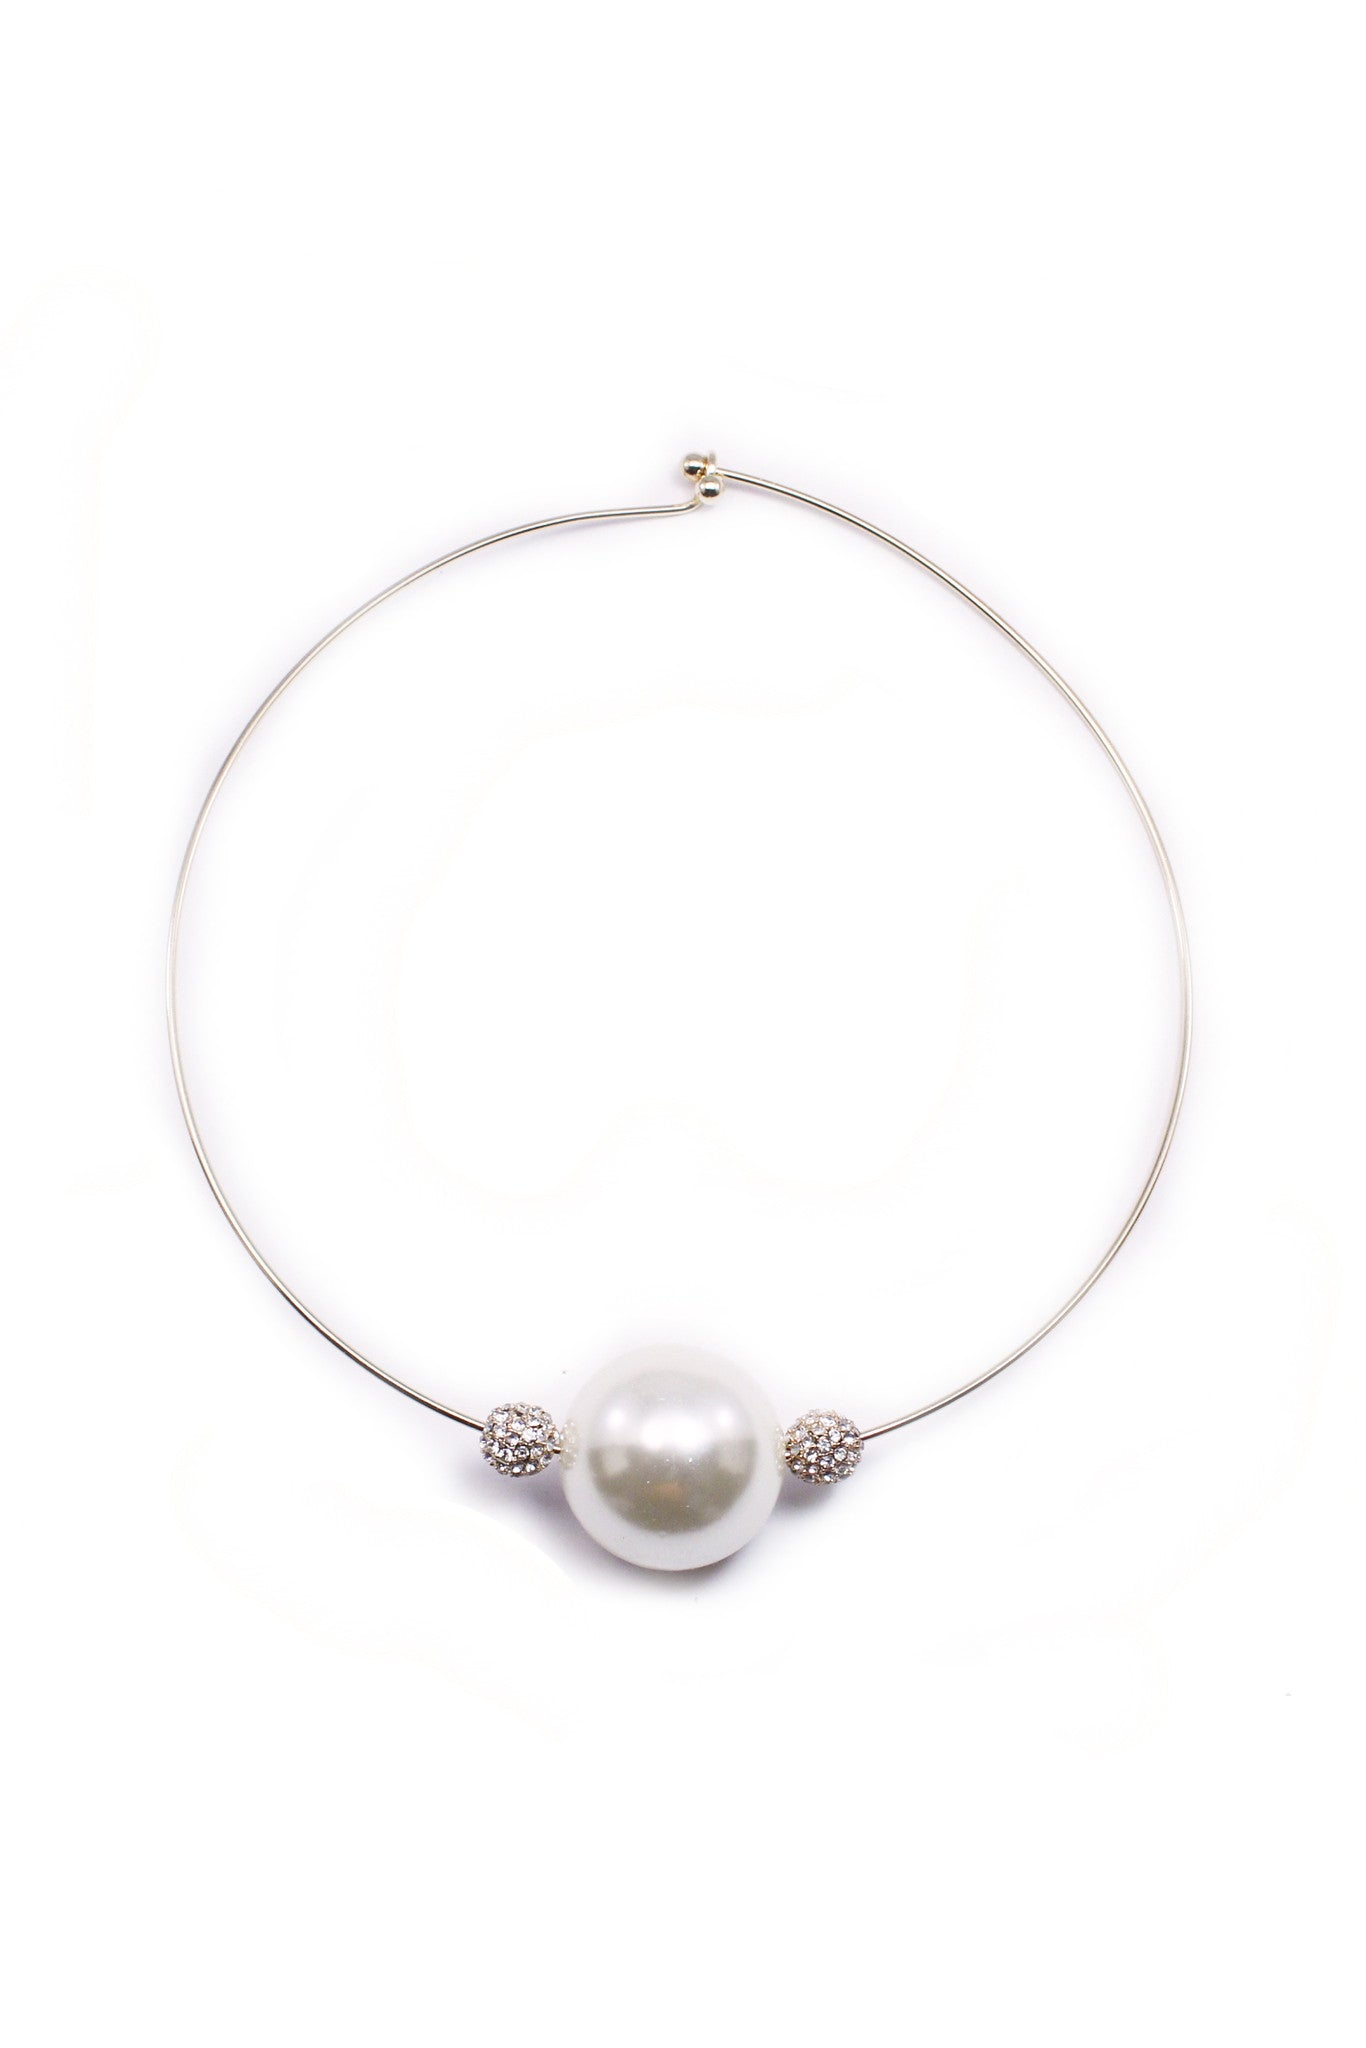 Dauntless Pearl Choker